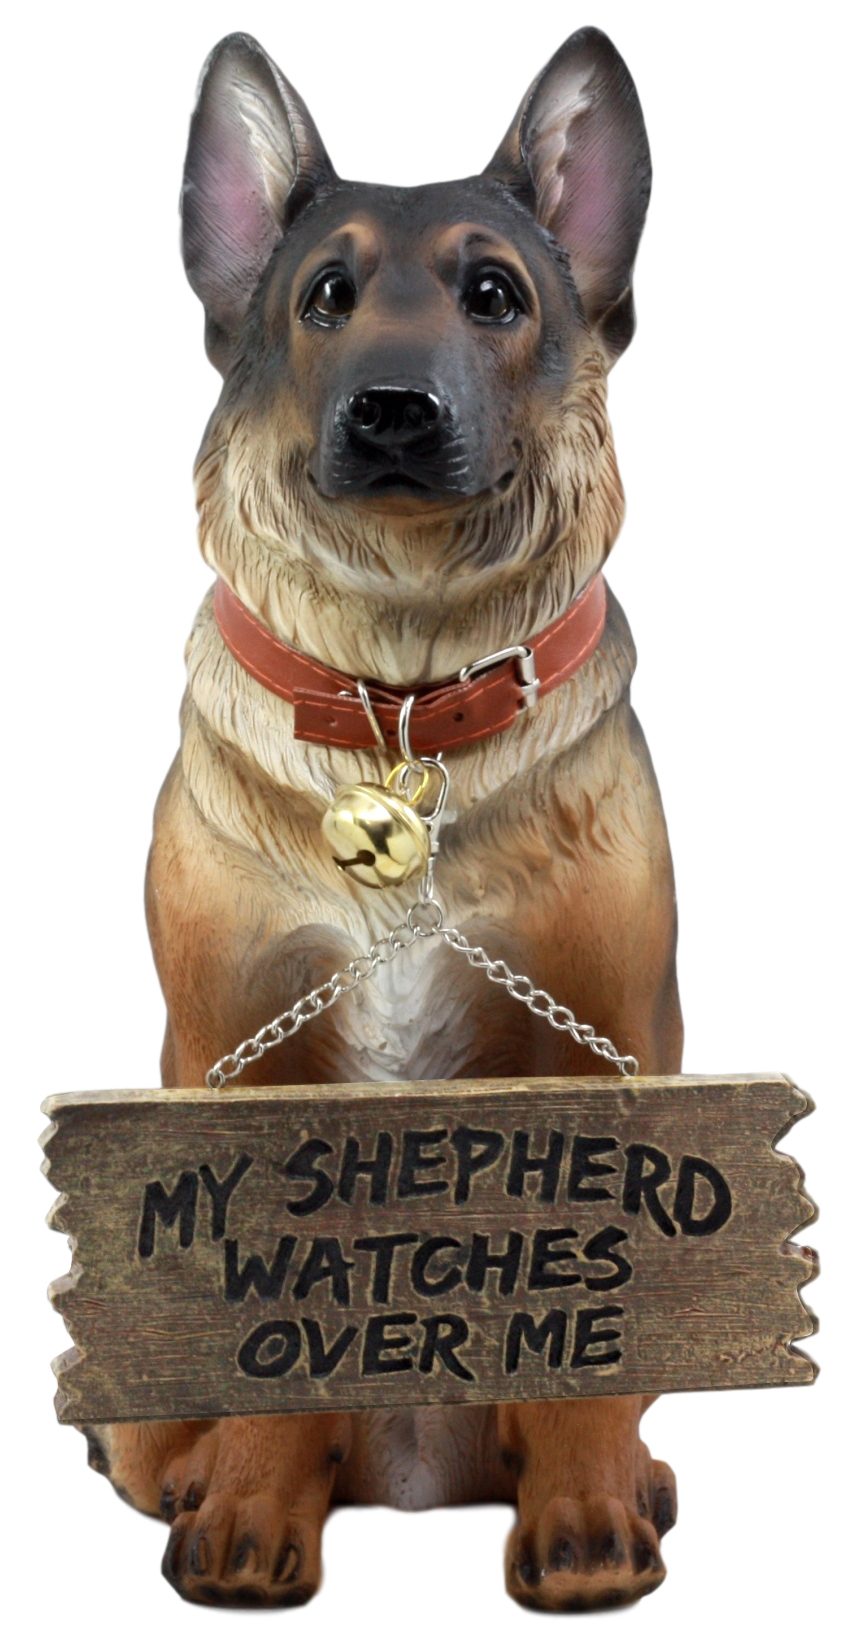 Ebros Old Faithful German Shepherd Dog Statue With Jingle Collar and Greeter Sign Patio Welcome Decor Sculpture by